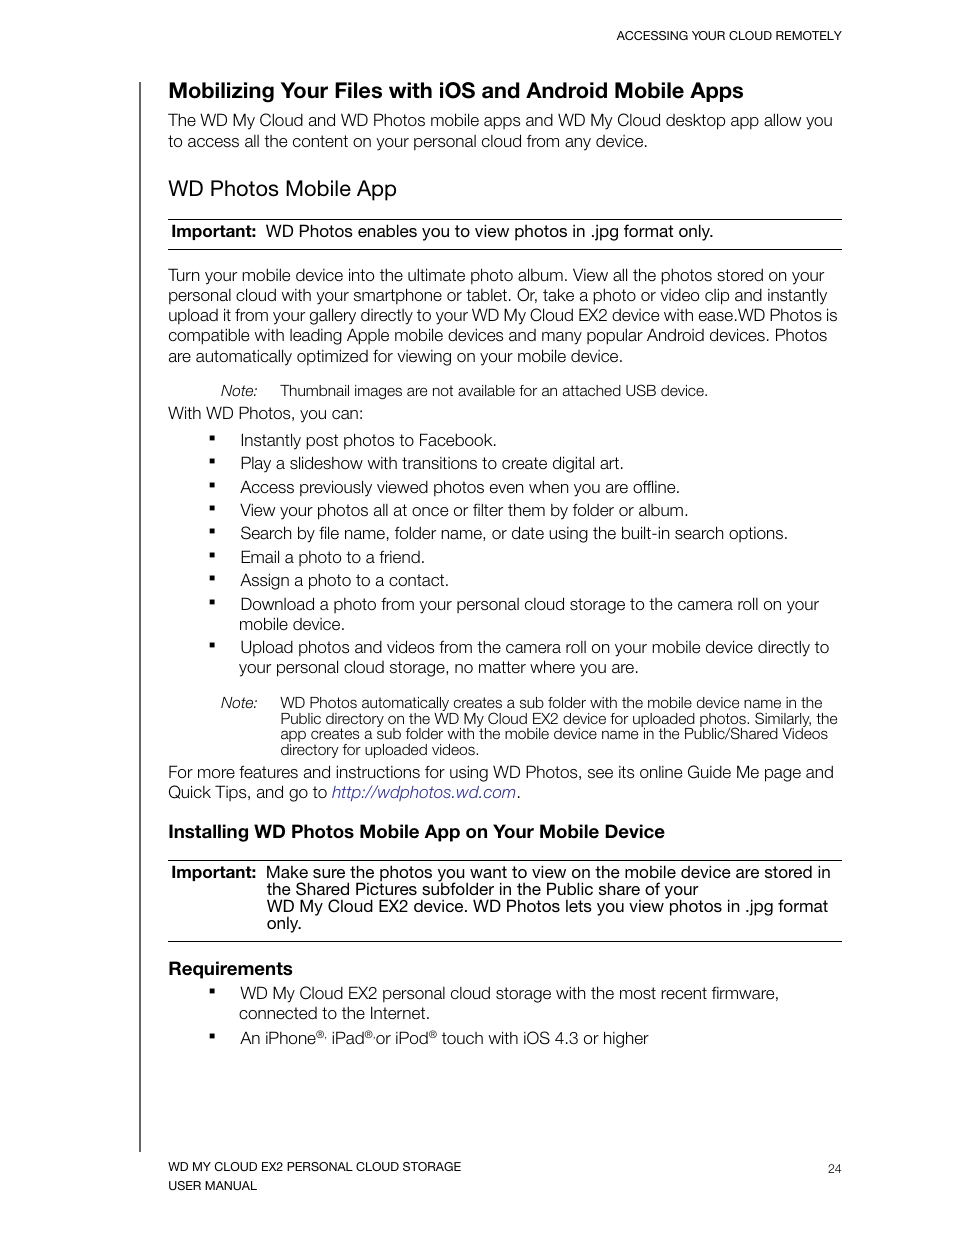 Wd photos mobile app, Requirements | Western Digital My